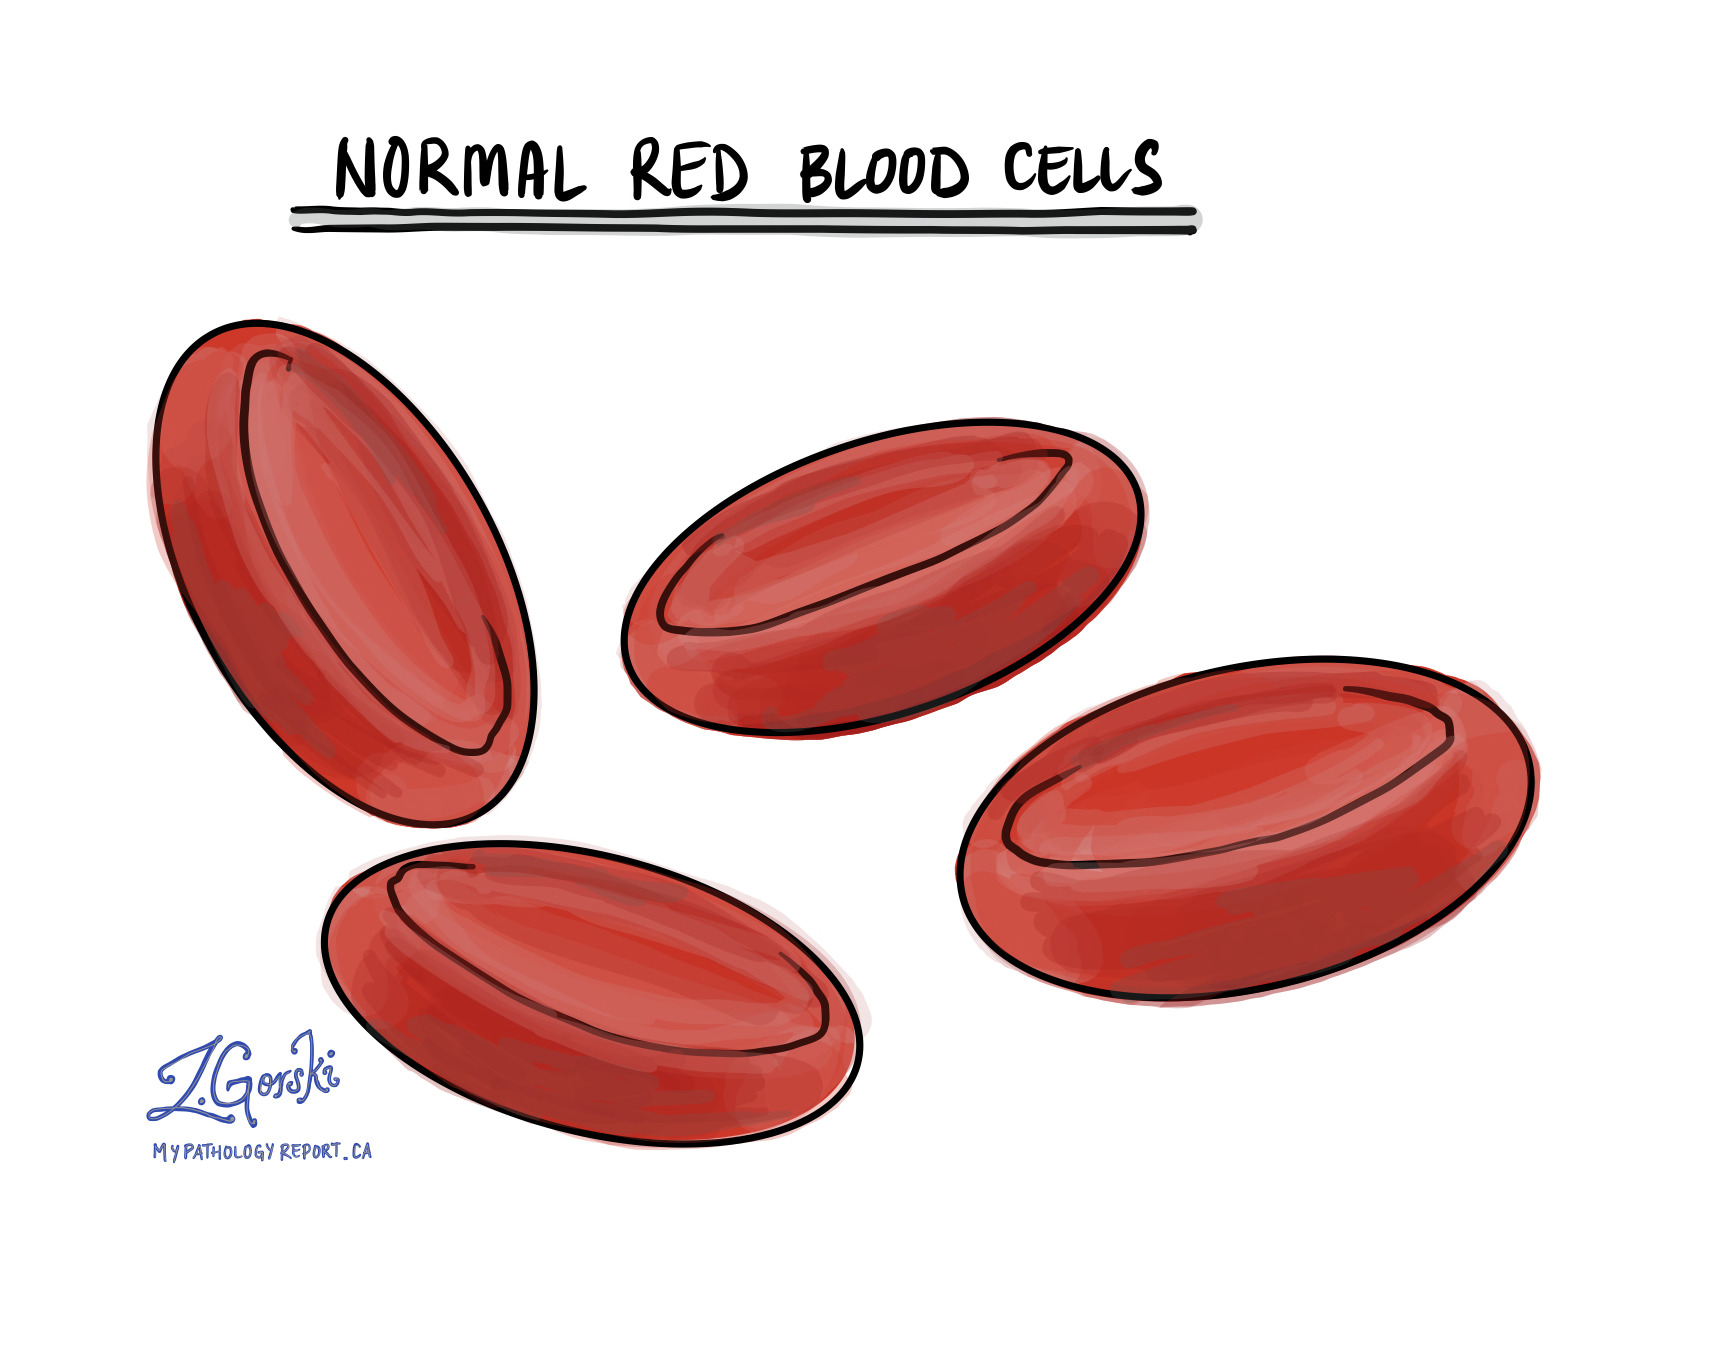 Normal red blood cells